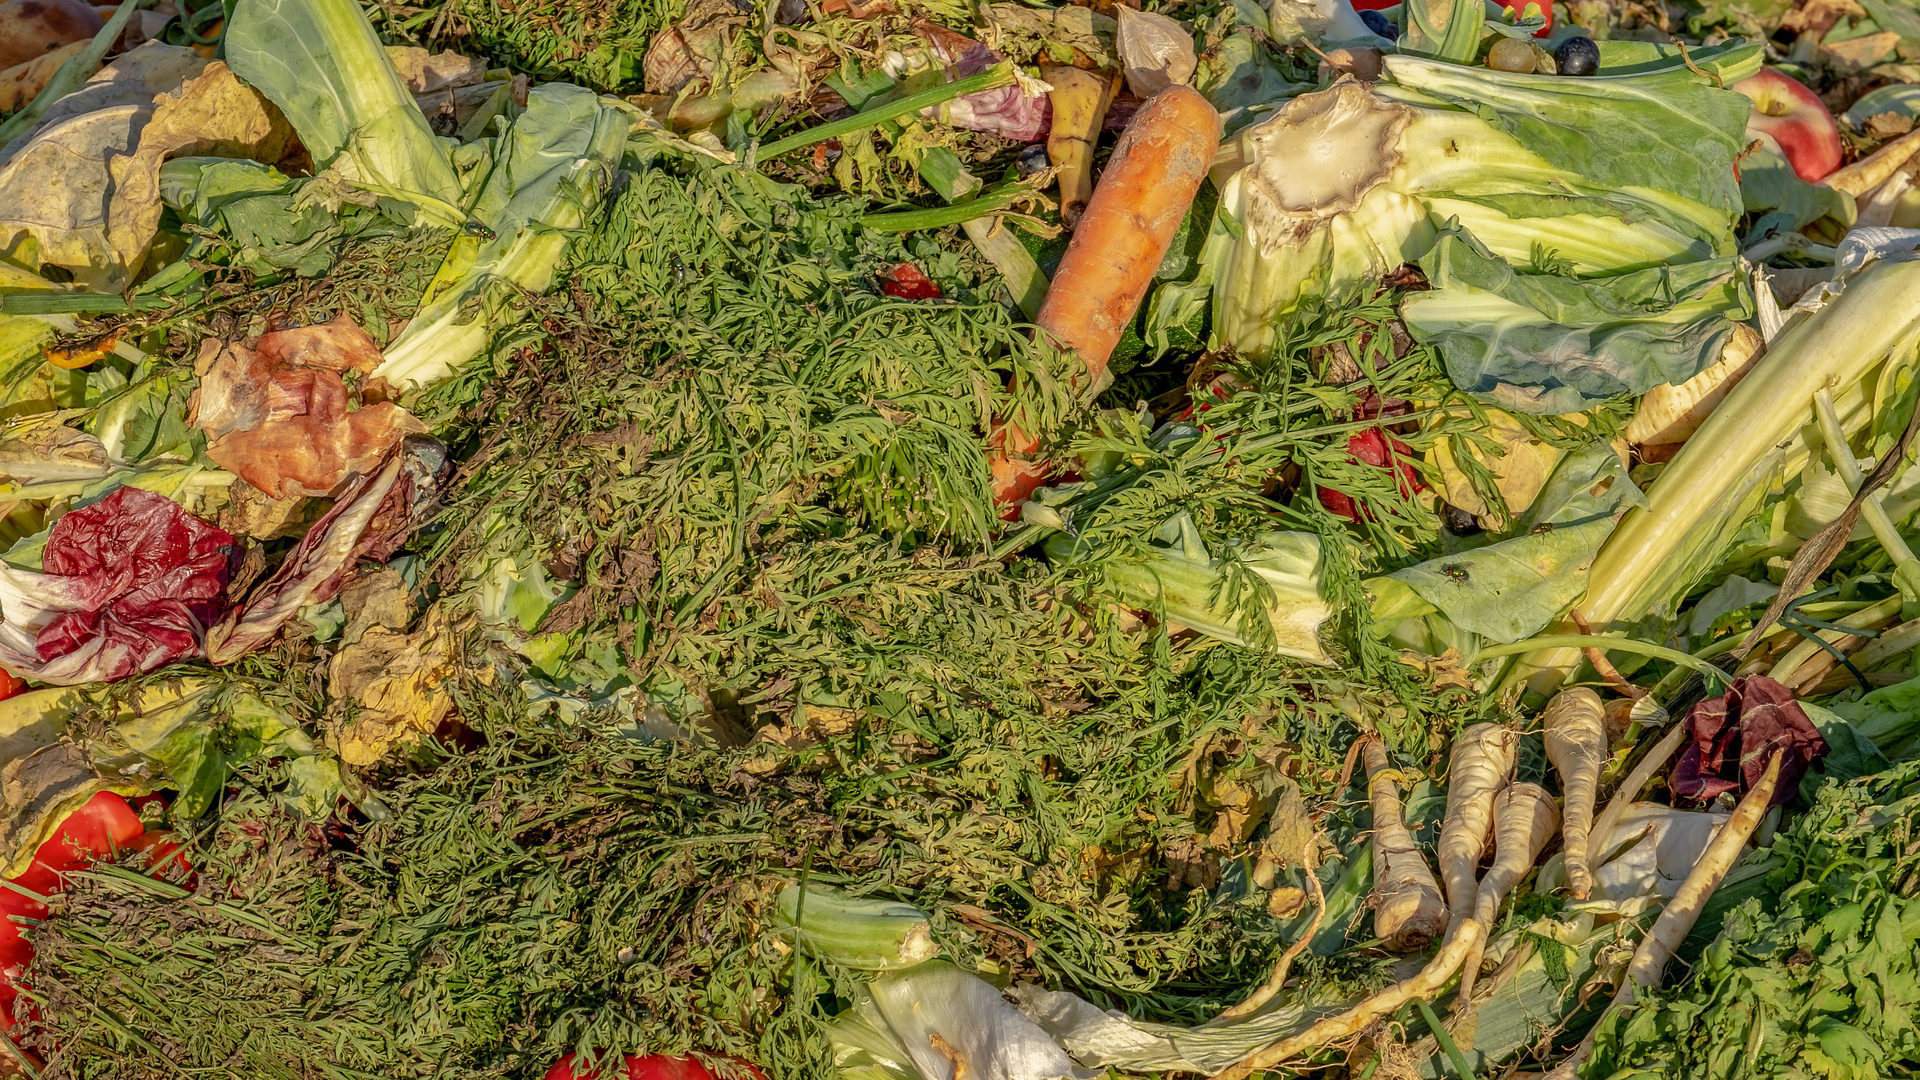 Addressing food loss and waste in Spain